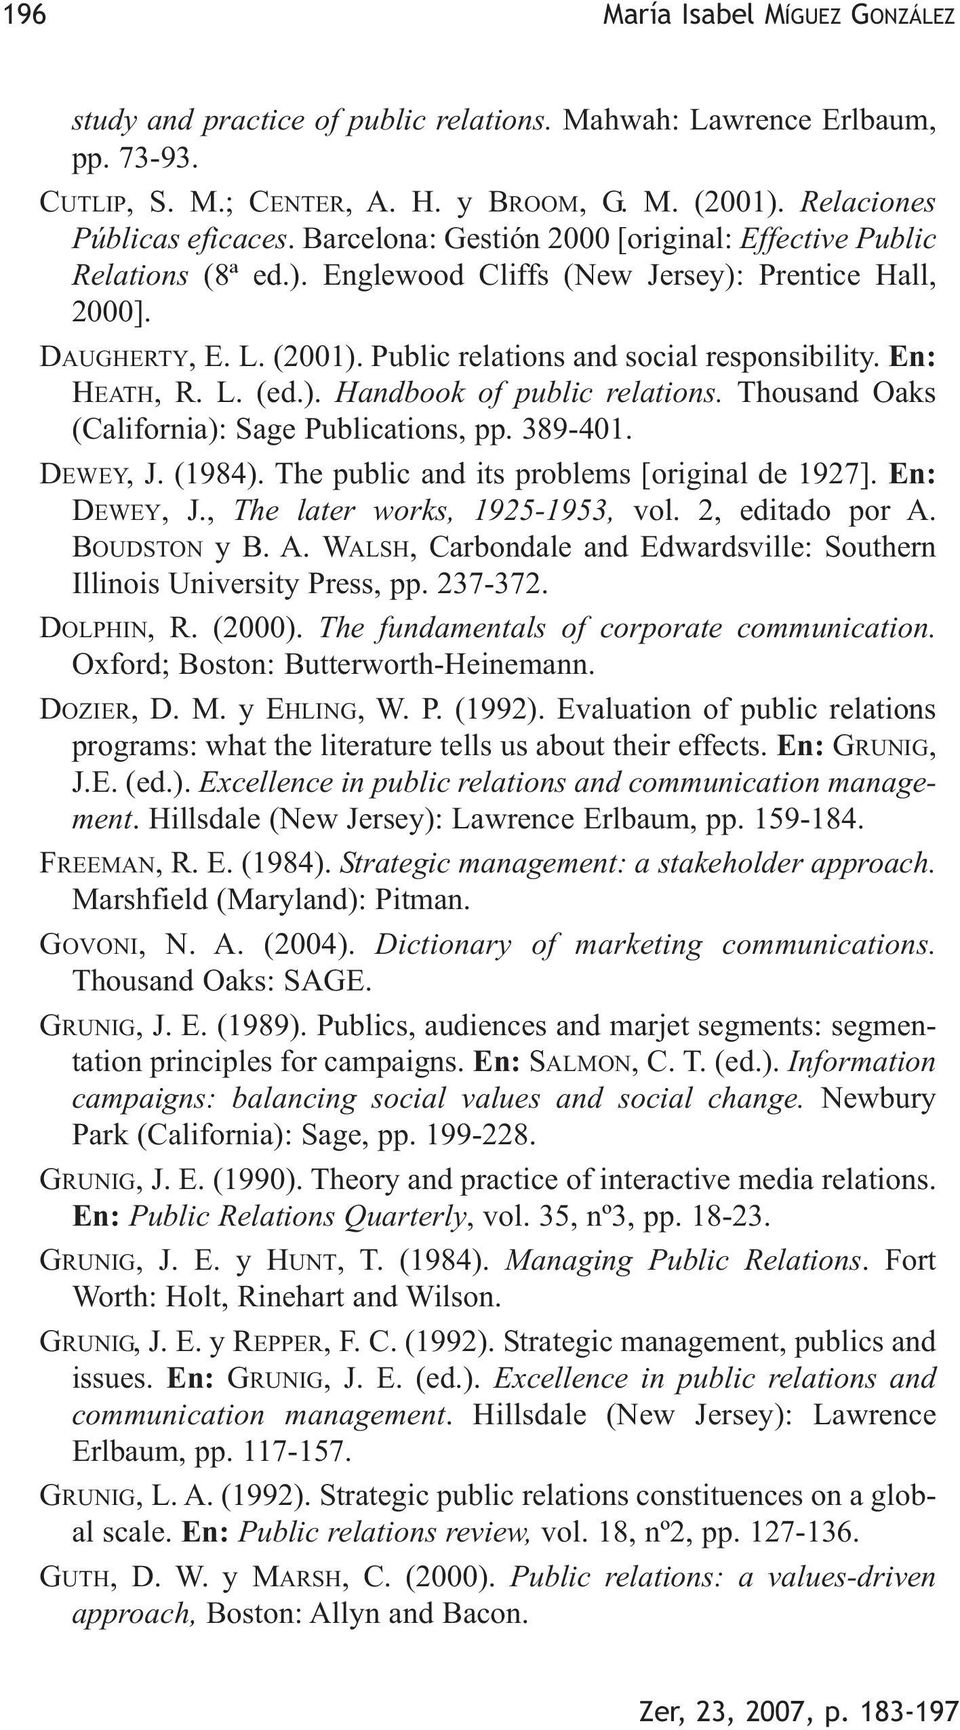 En: HEATH, R. L. (ed.). Handbook of public relations. Thousand Oaks (California): Sage Publications, pp. 389-401. DEWEY, J. (1984). The public and its problems [original de 1927]. En: DEWEY, J.